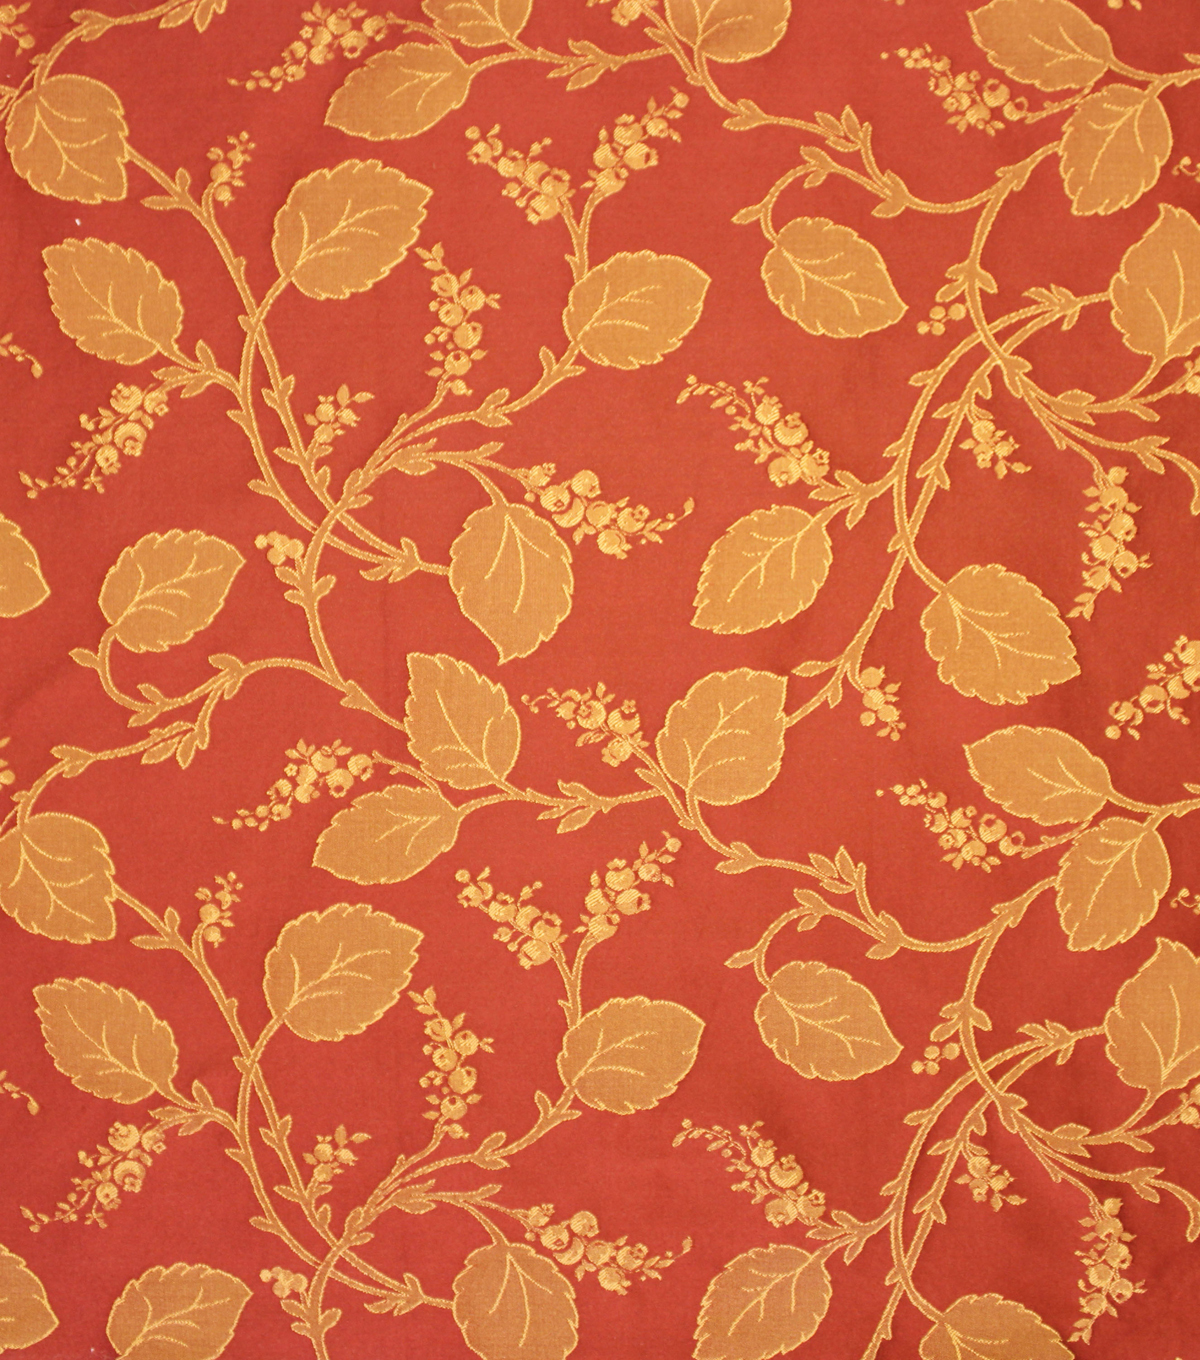 Home Decor 8\u0022x8\u0022 Fabric Swatch-Upholstery Fabric Barrow M6800-5282 Cinnabar